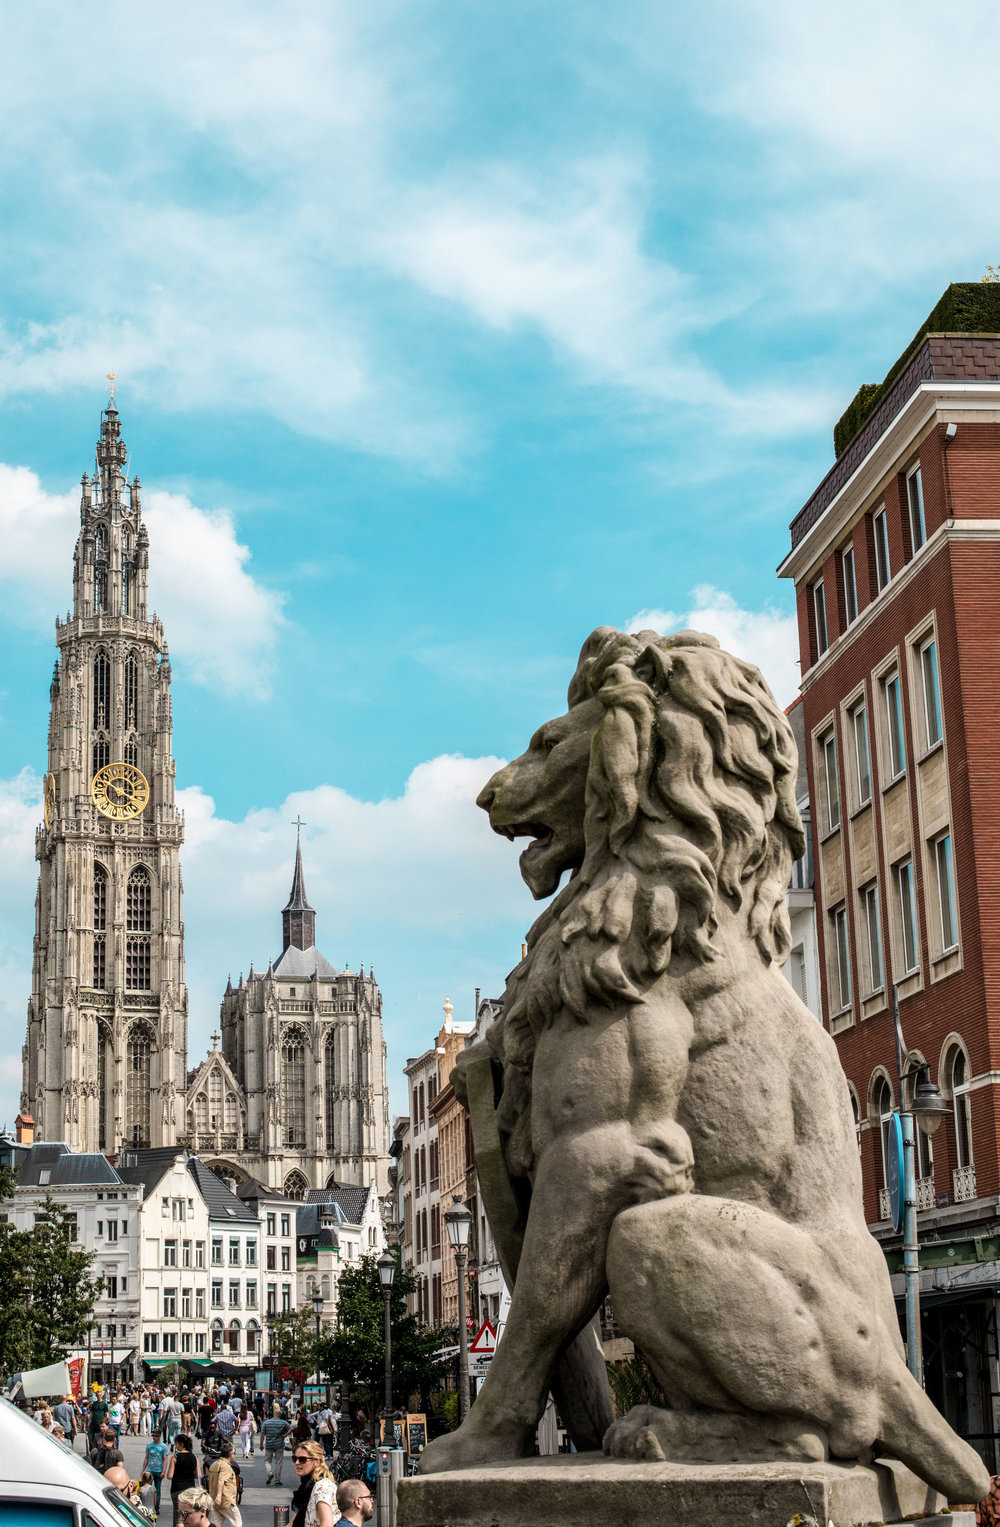 Antwerp-City-Scenes-15.jpg